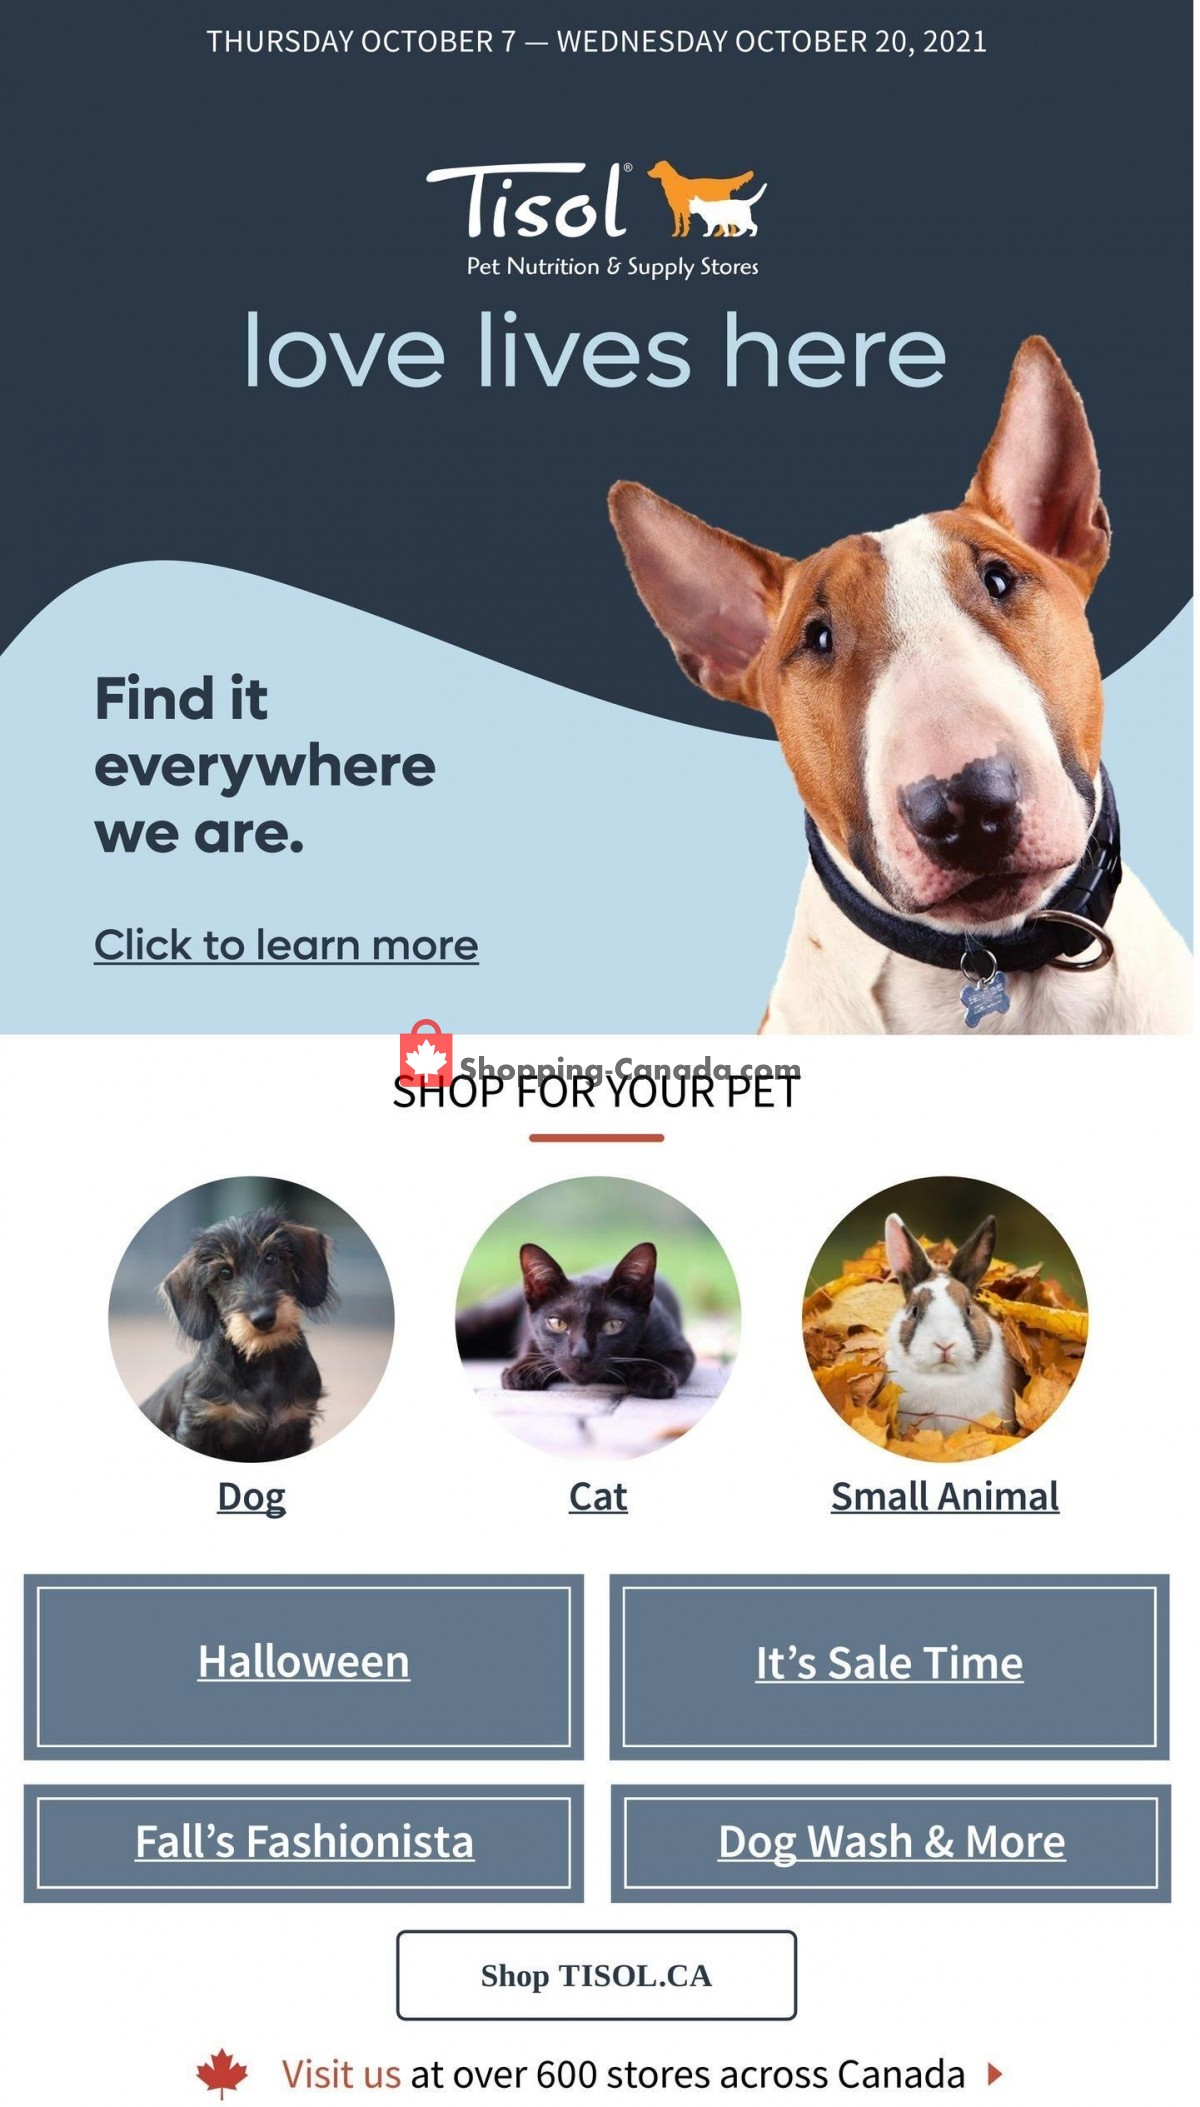 Flyer Tisol Pet Nutrition And Supply Stores Canada - from Thursday October 7, 2021 to Wednesday October 20, 2021